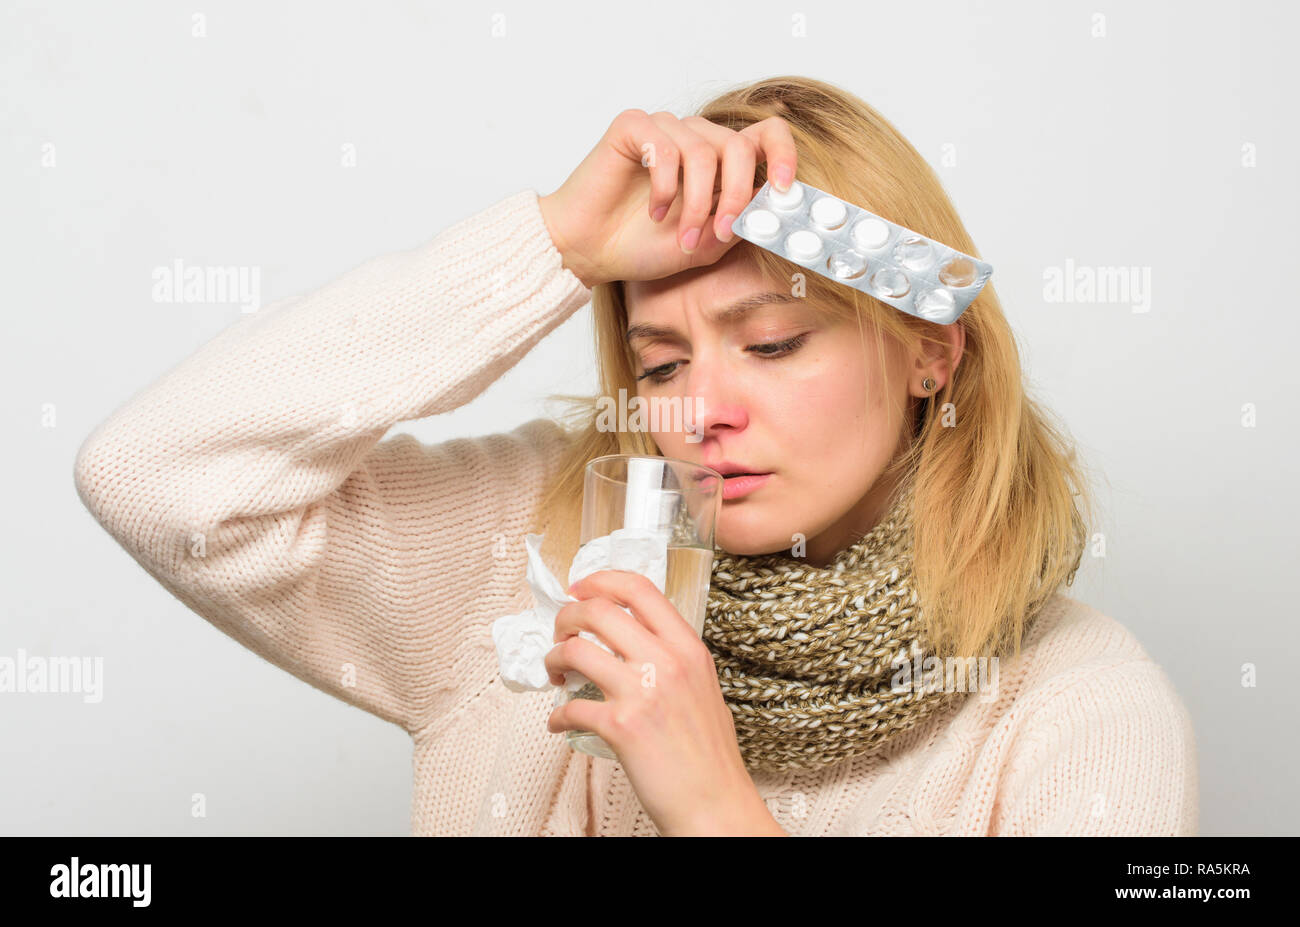 Headache and fever remedies. Woman tousled hair scarf hold tablets blister. Guidelines for treating fever. Take medications to reduce fever. Best fever reducer. Girl suffer headache and take medicine. - Stock Image